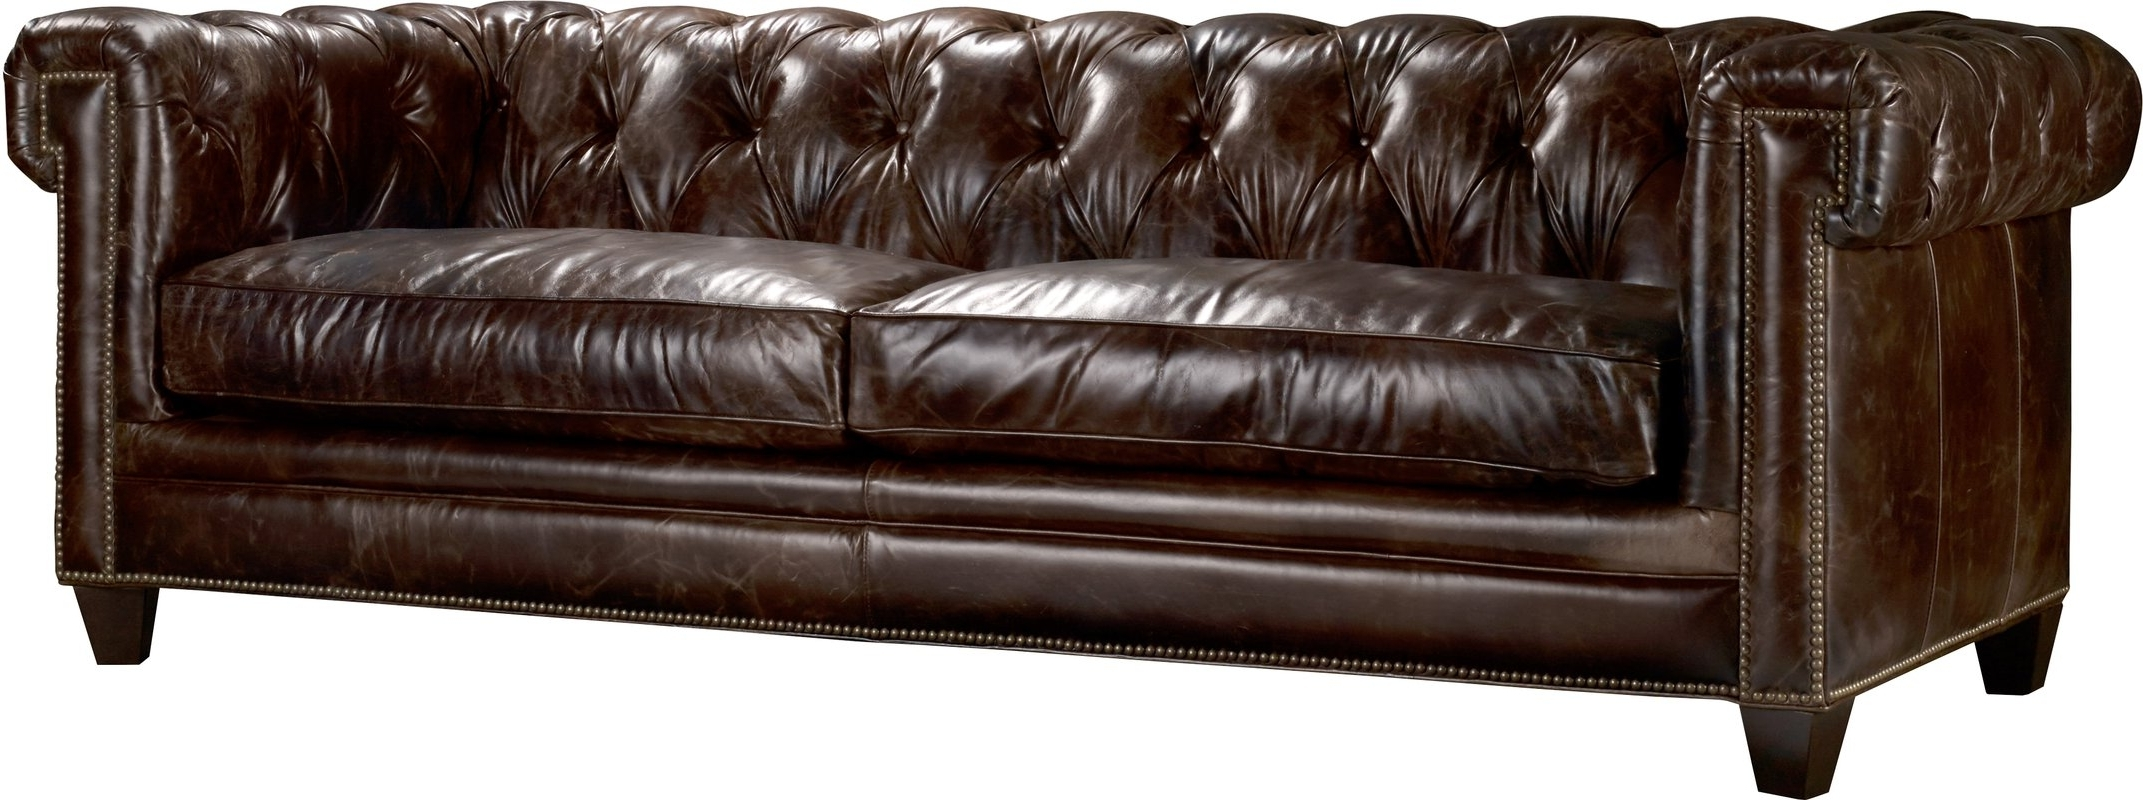 Favorite Hooker Furniture Imperial Regal Stationary Leather Chesterfield Inside Chesterfield Sofas (View 15 of 20)